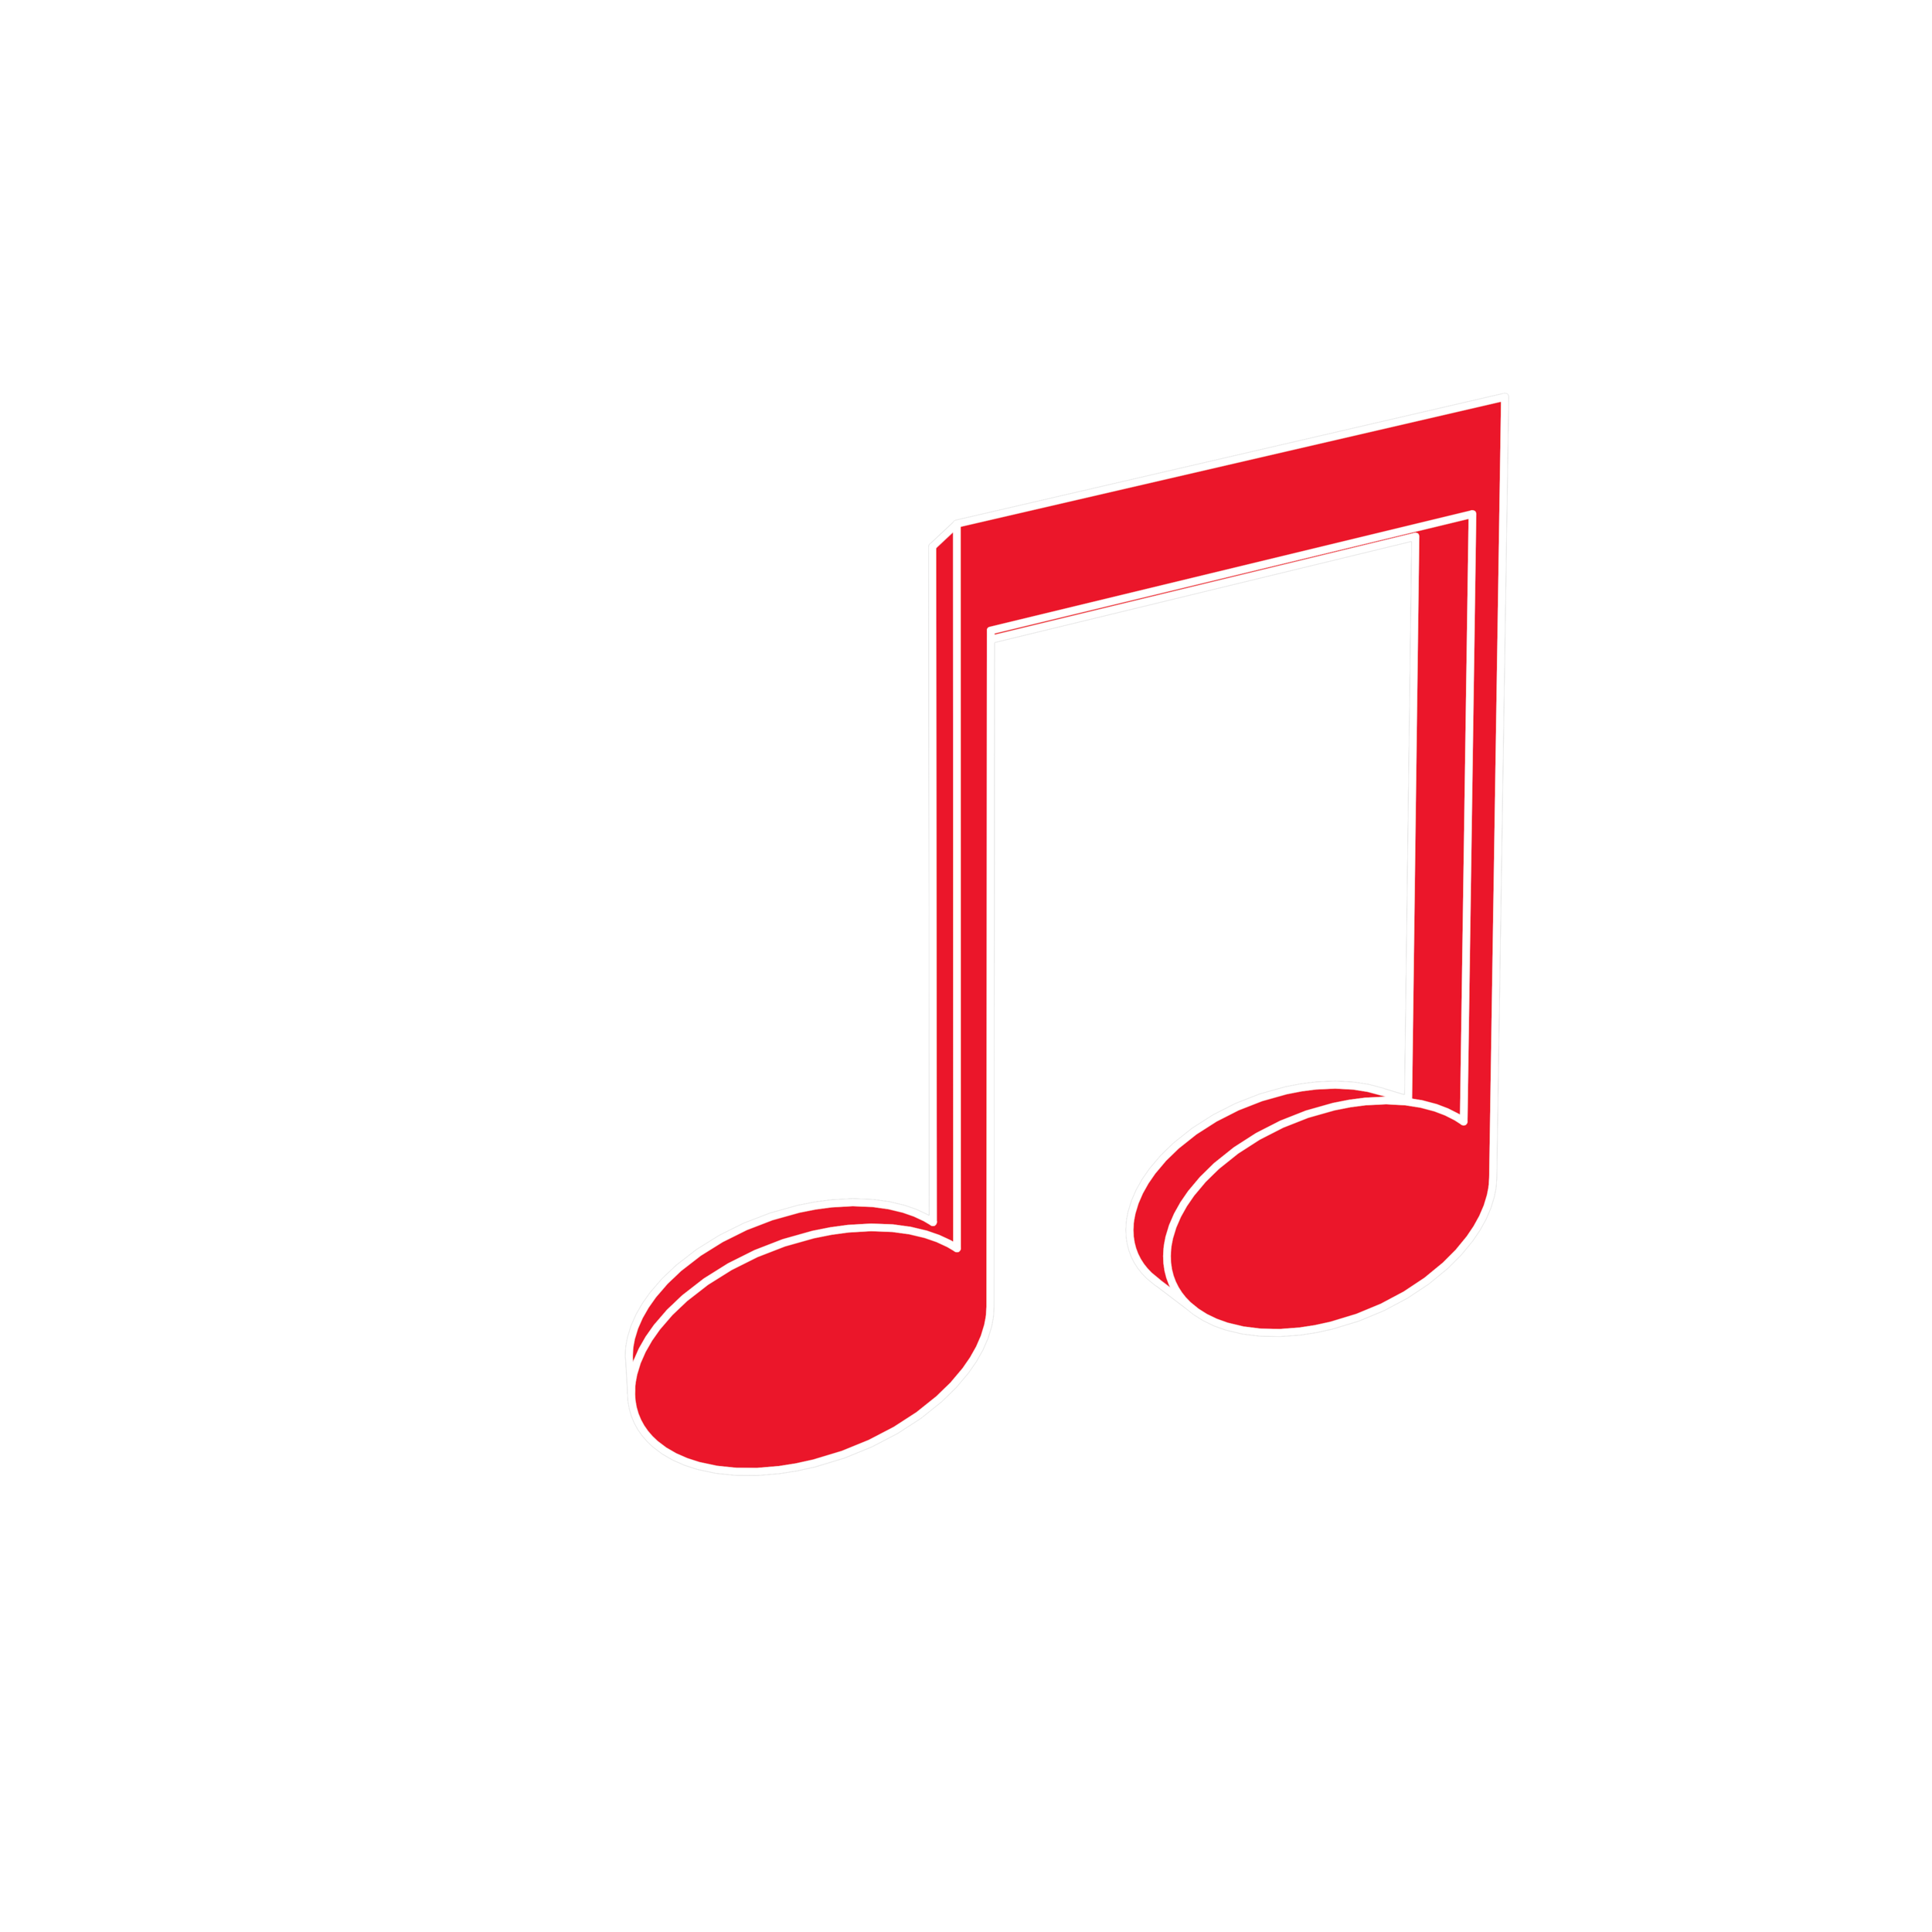 Music_2_-_Red.png